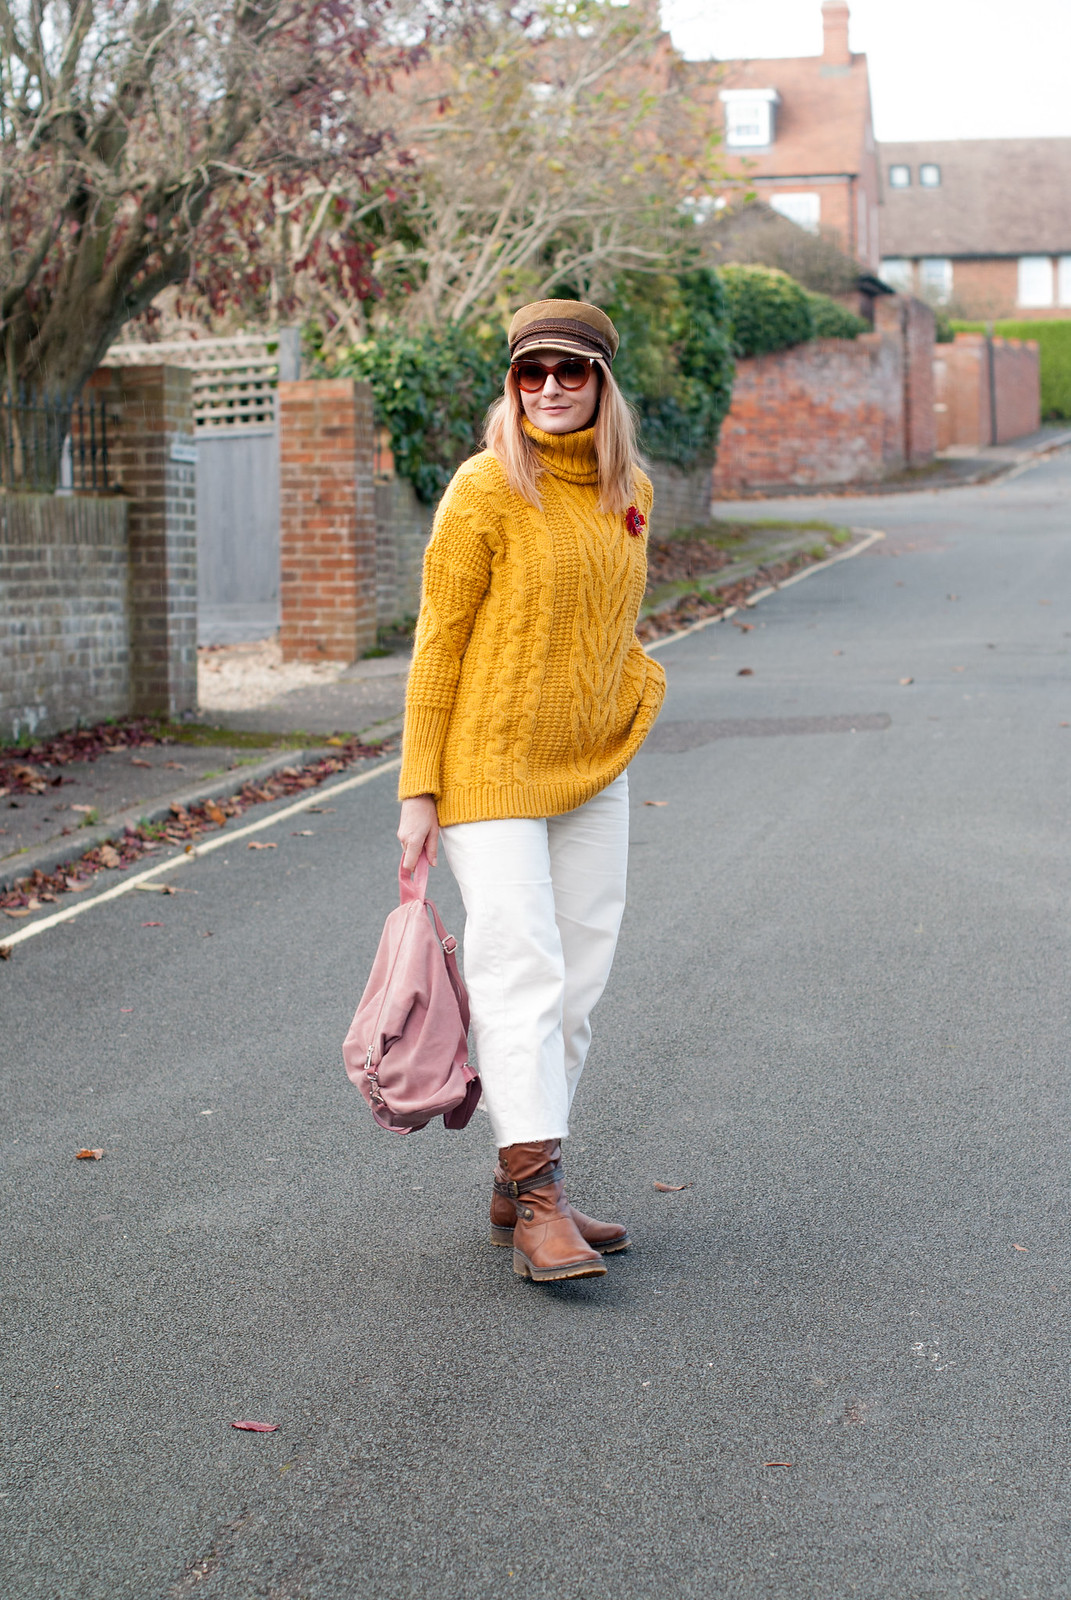 Autumn winter fall style - casual fall dressing - Mustard M&S cable knit oversized roll neck sweater \ white cropped wide leg jeans \ tan boots \ camel baker boy hat \ pink suede backpack | Not Dressed As Lamb, over 40 style